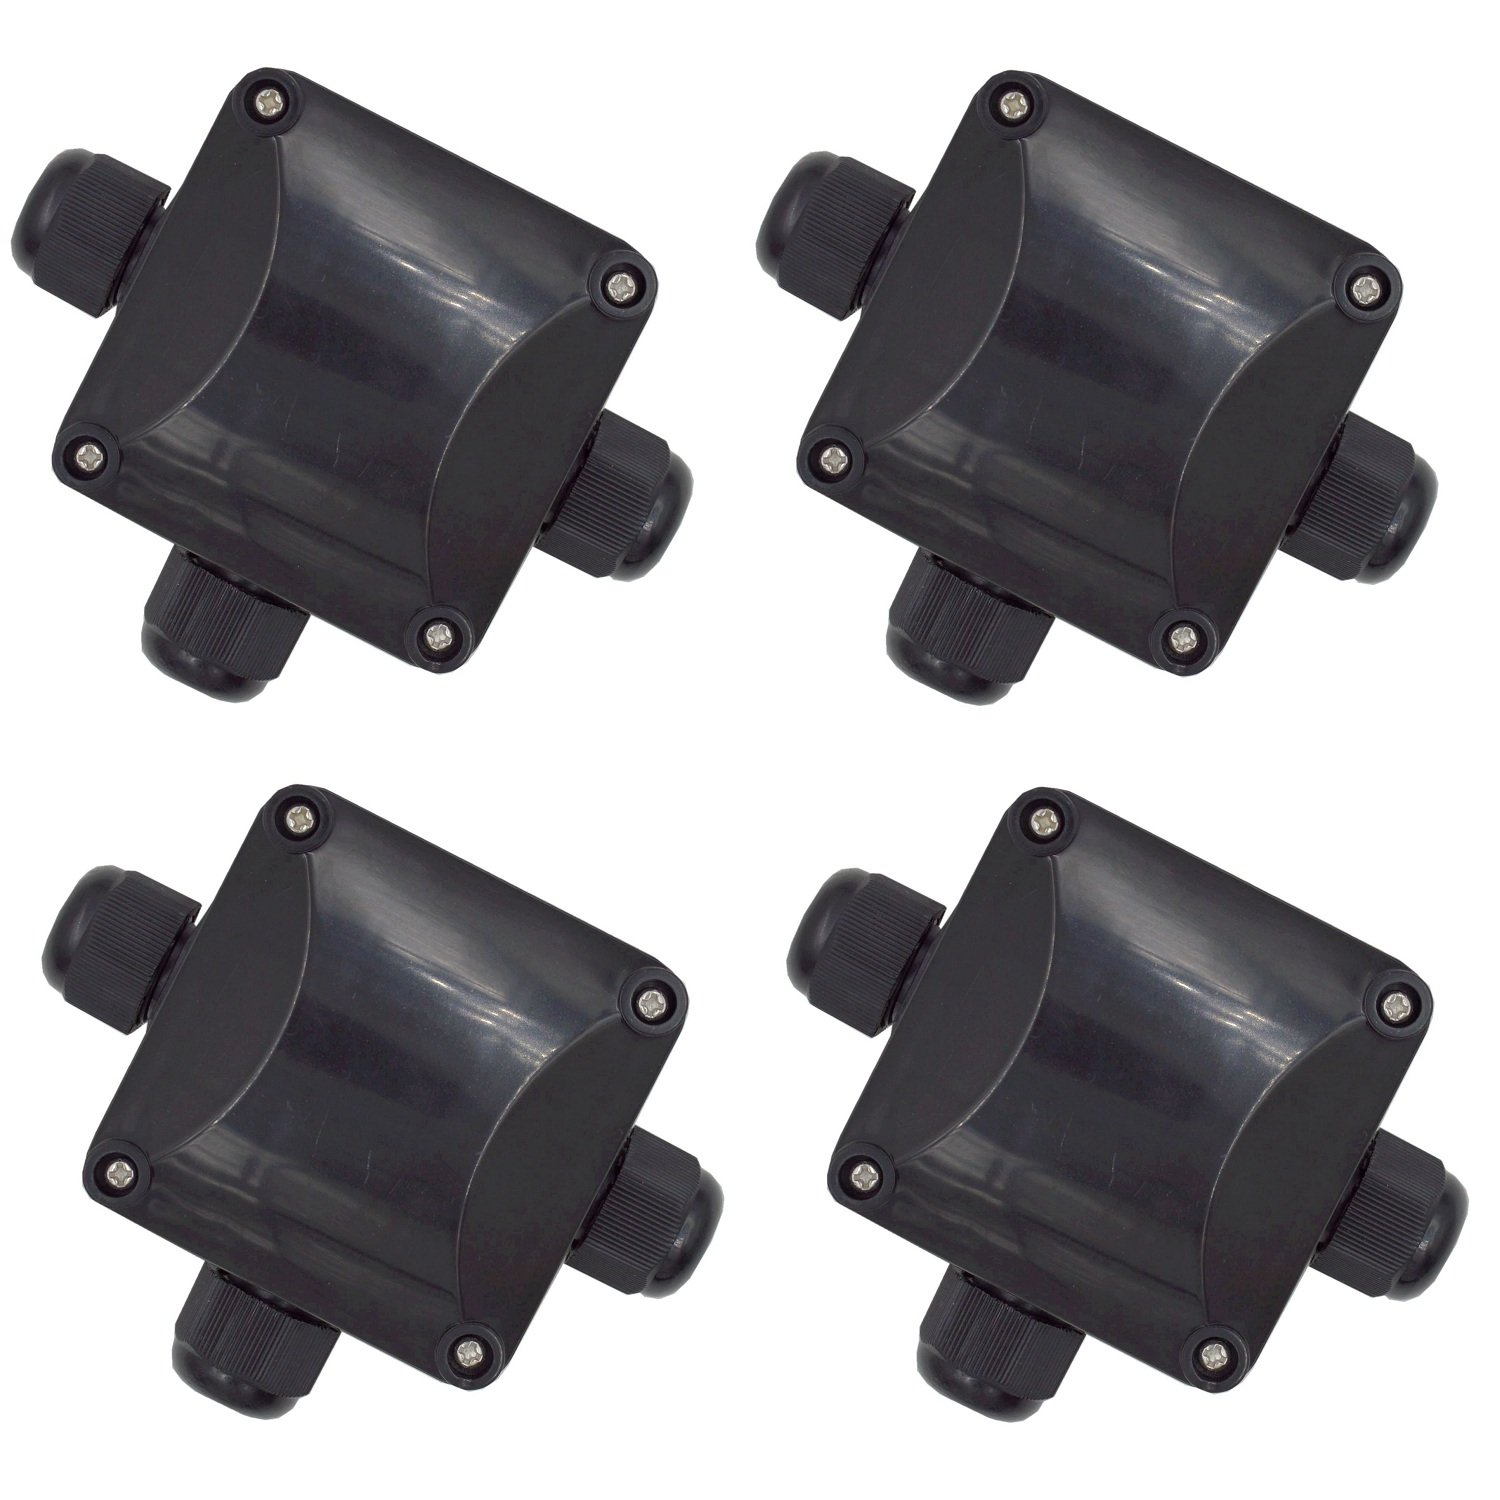 DerBlue 4PCS Junction Box,Waterproof IP68 Outdoor 3 Way Electric Cable Junction Box, Underground Cable Line Wires Power Cord Connector Protection (Black)